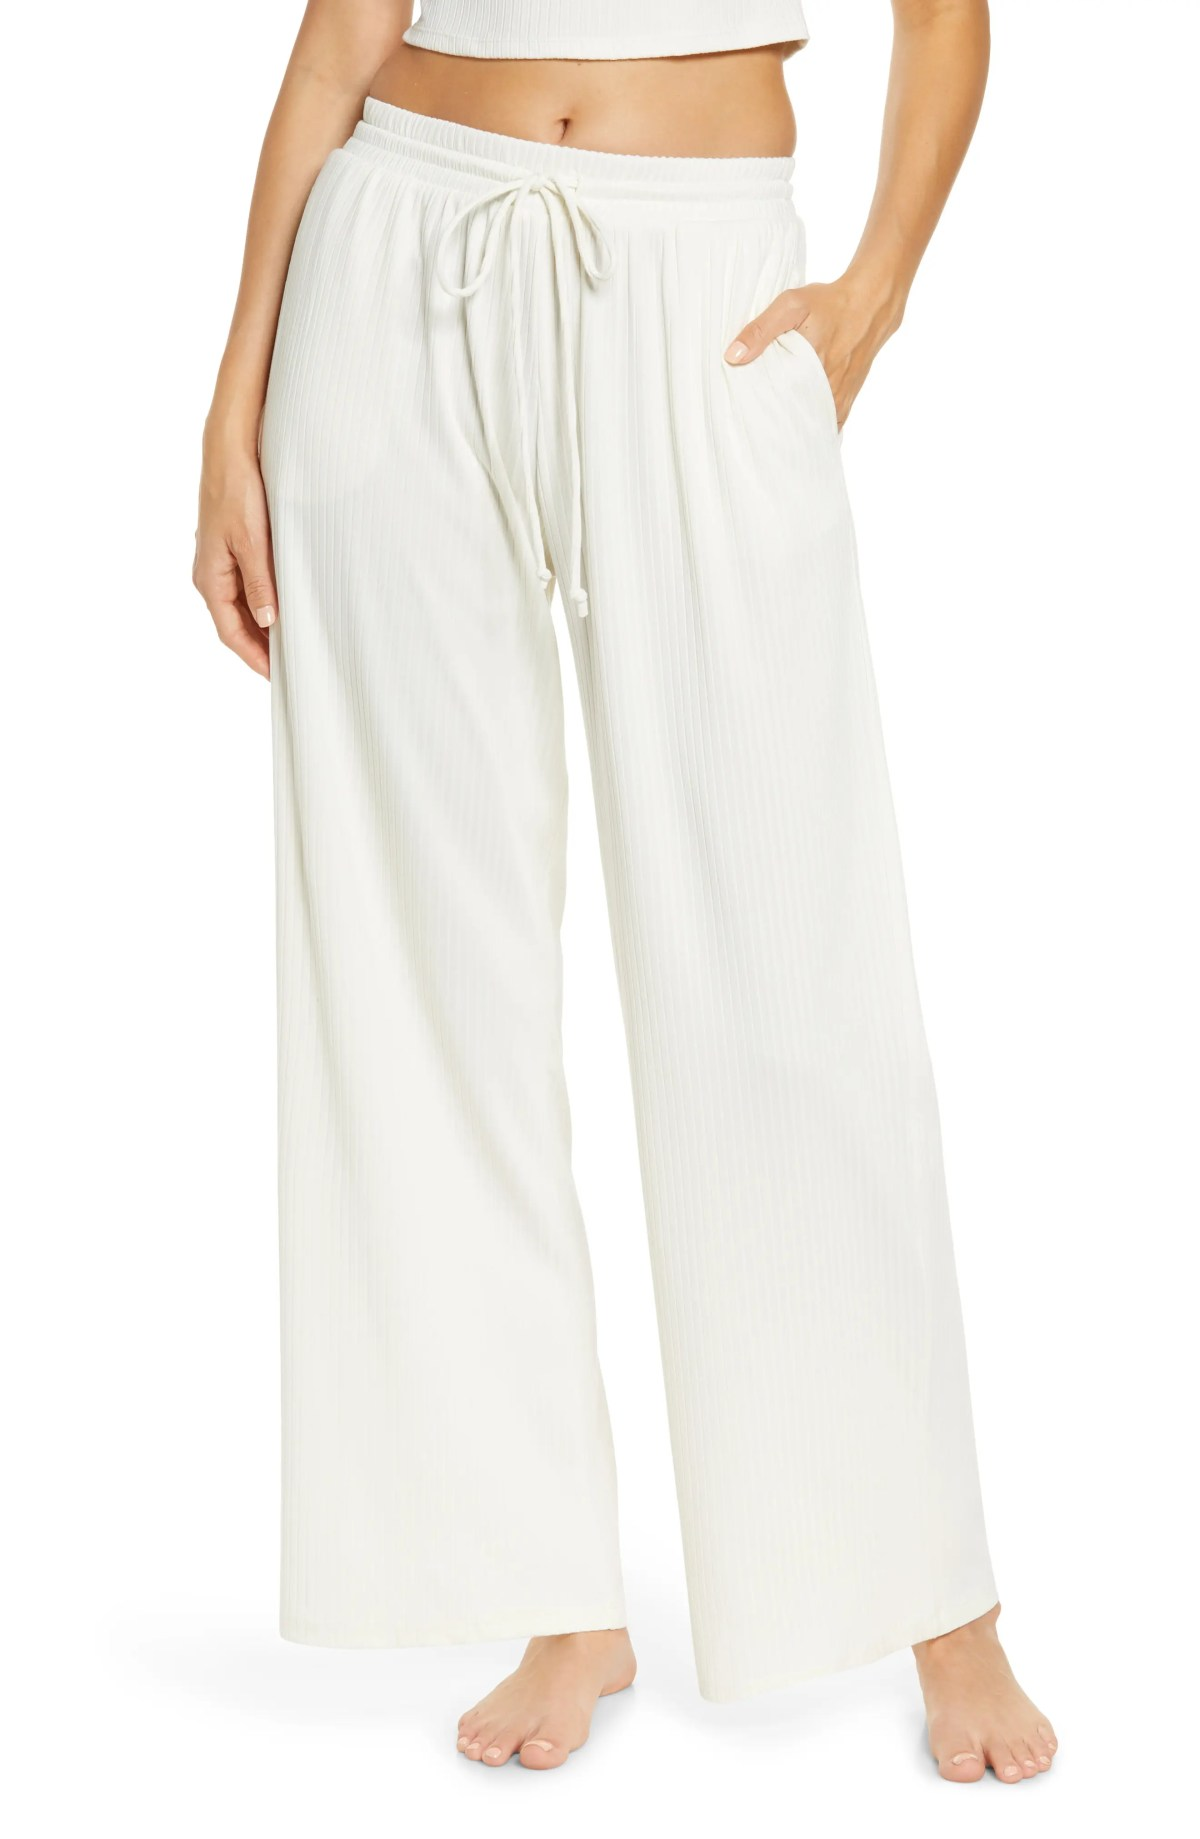 SOCIALITE Wide Leg Drawstring Pants, Main, color, IVORY